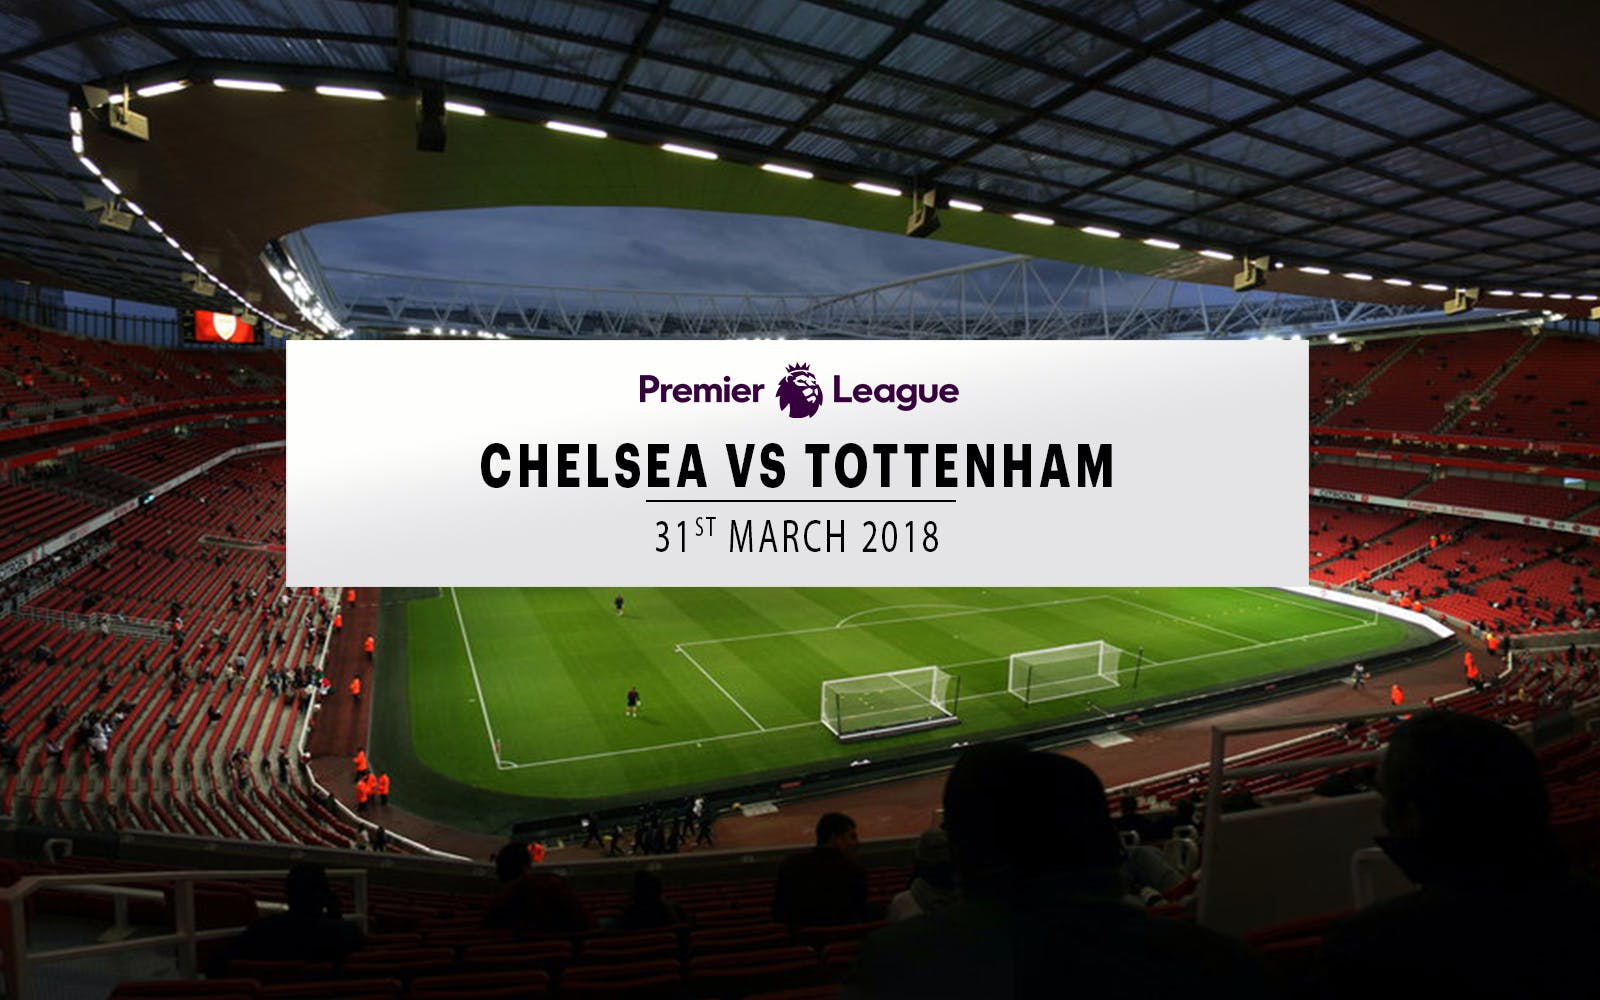 chelsea vs tottenham - 31st march 2018-1